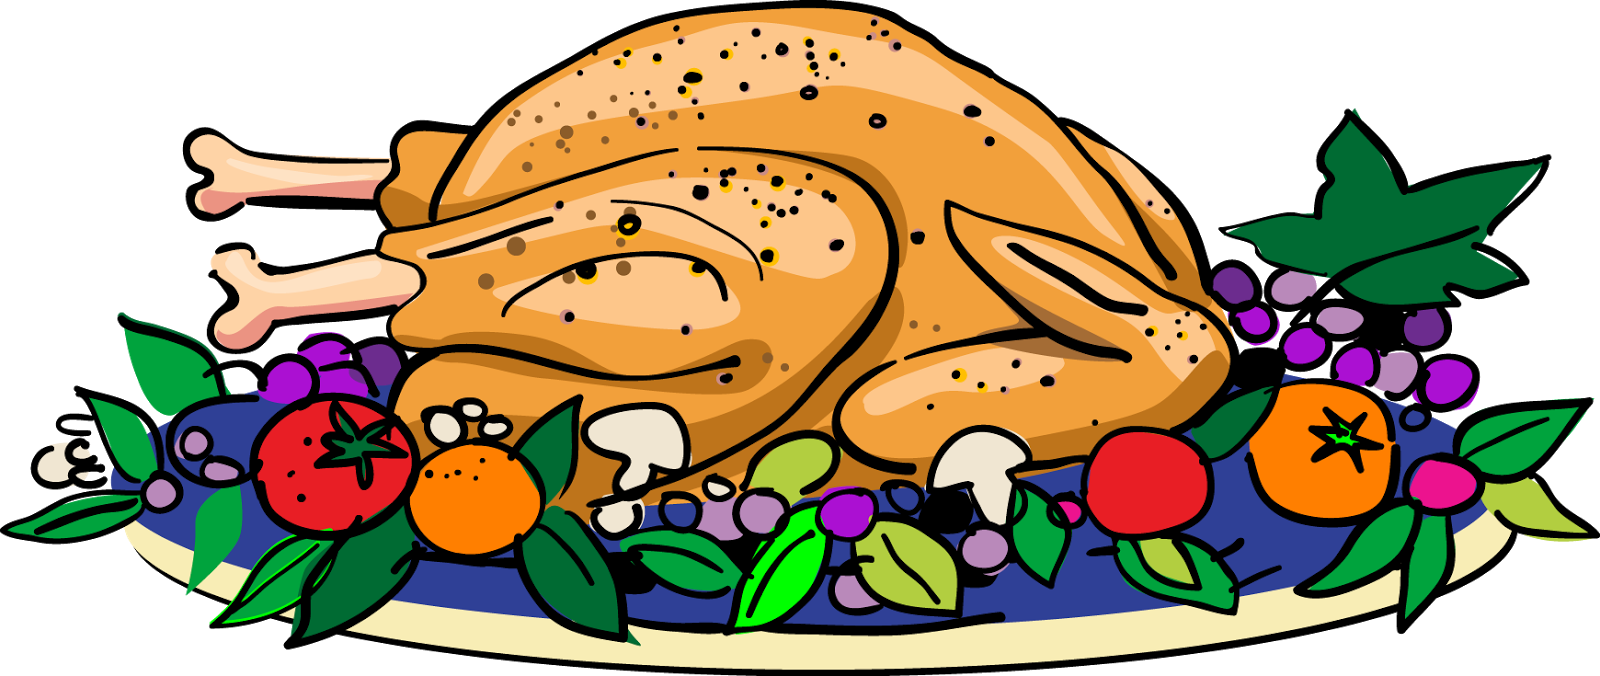 Queen clipart medieval maiden. Feast thanksgiving table free